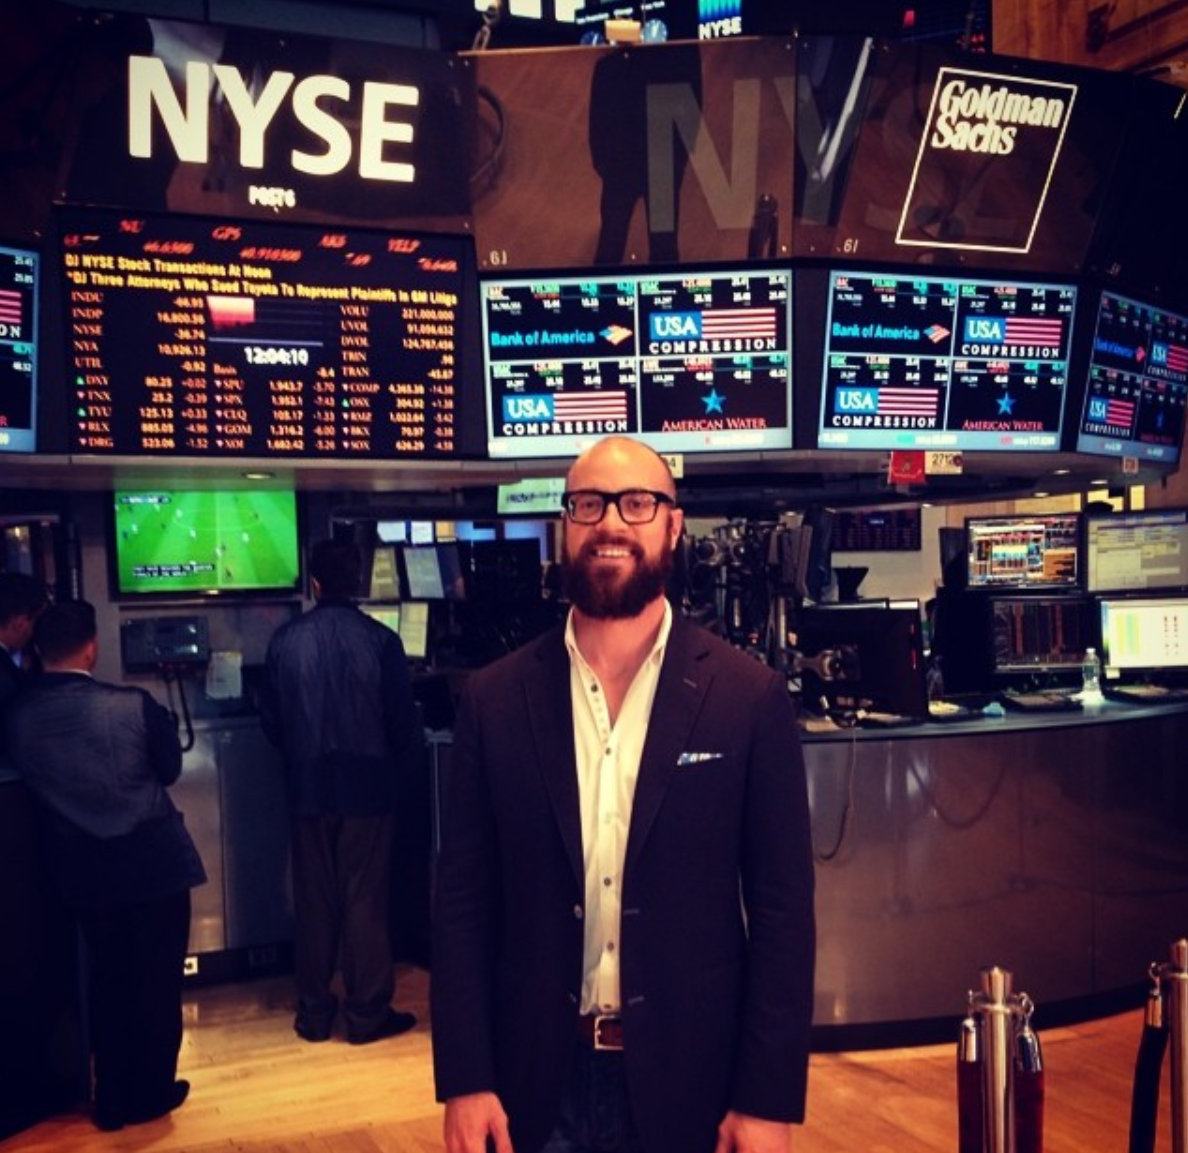 Apartment List visits the NYSE - June 2014 | Apartment List visits the New York Stock Exchange